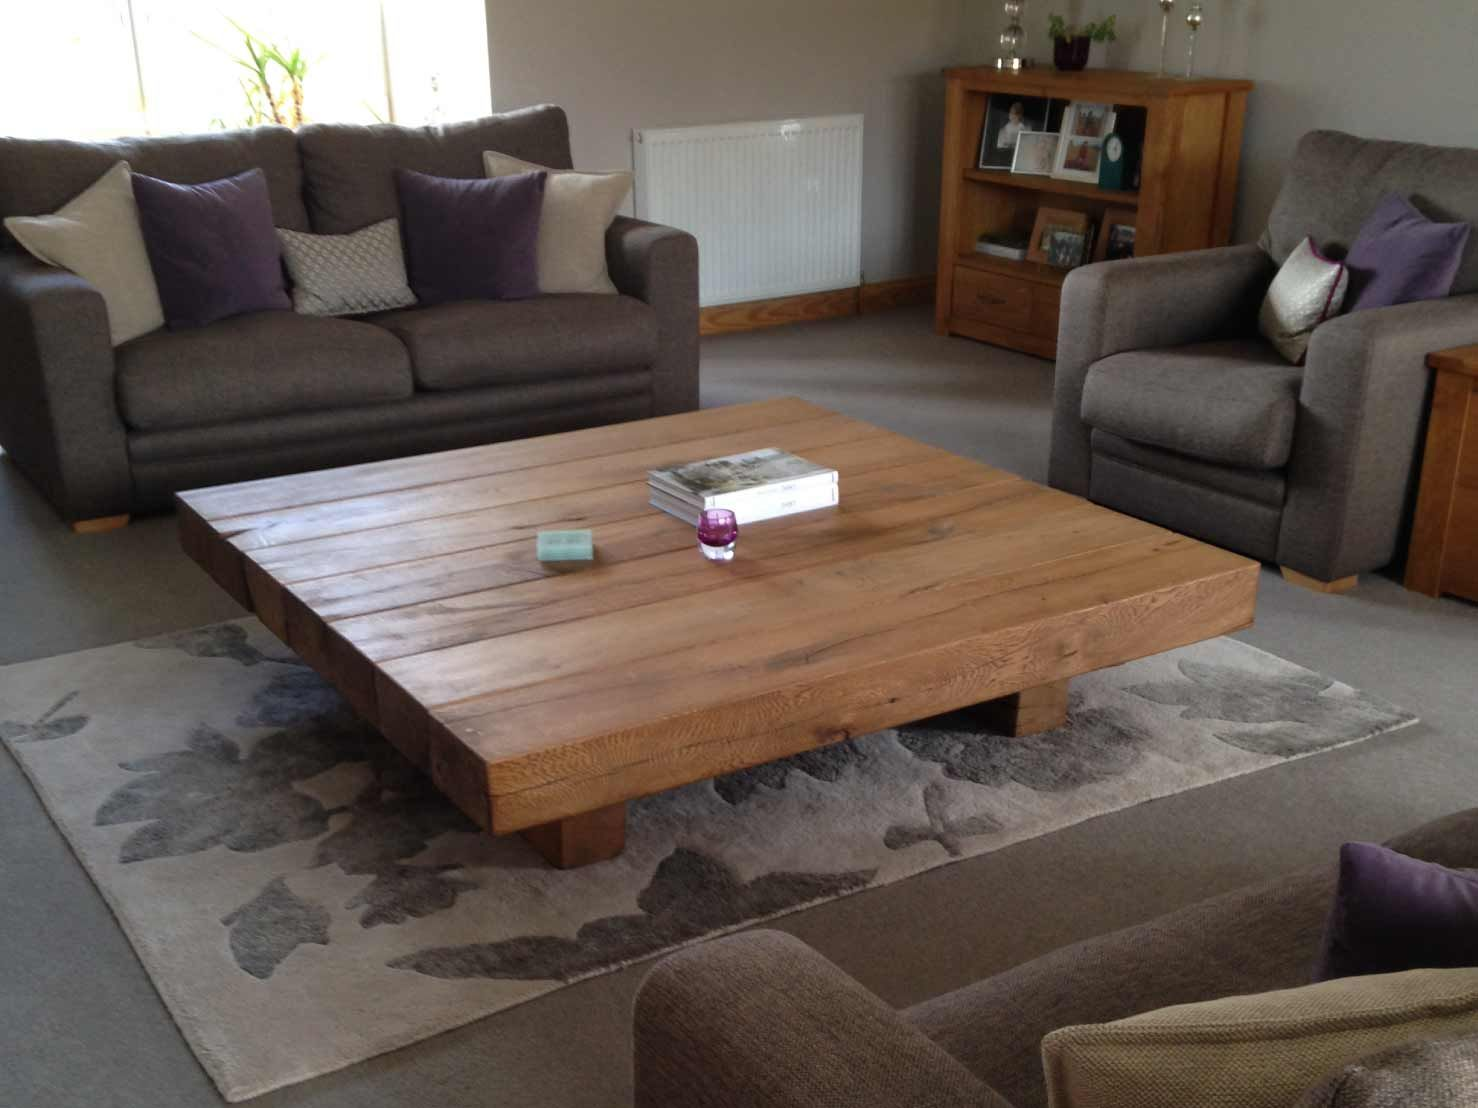 Image Result For Solid Wood Coffee Table Square Coffee Table Low Coffee Table Kitchen Design Modern Small [ 1108 x 1478 Pixel ]